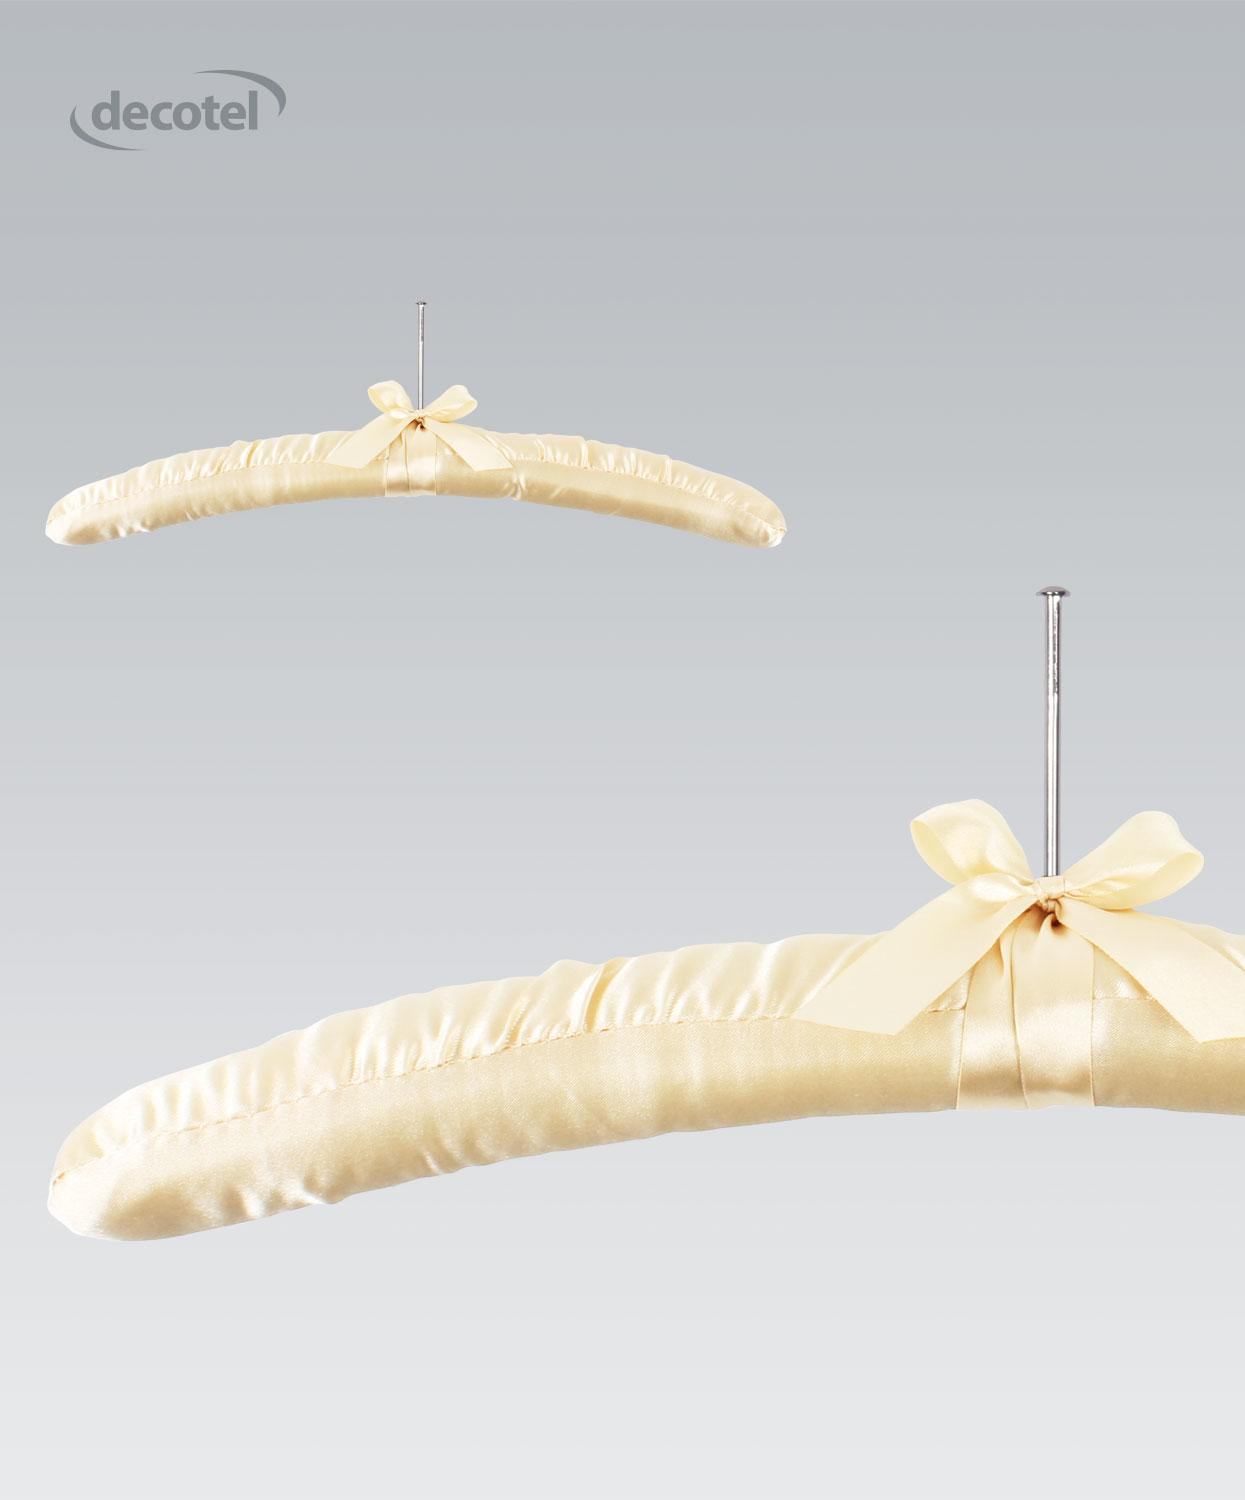 Deluxe Satin Cream Hanger